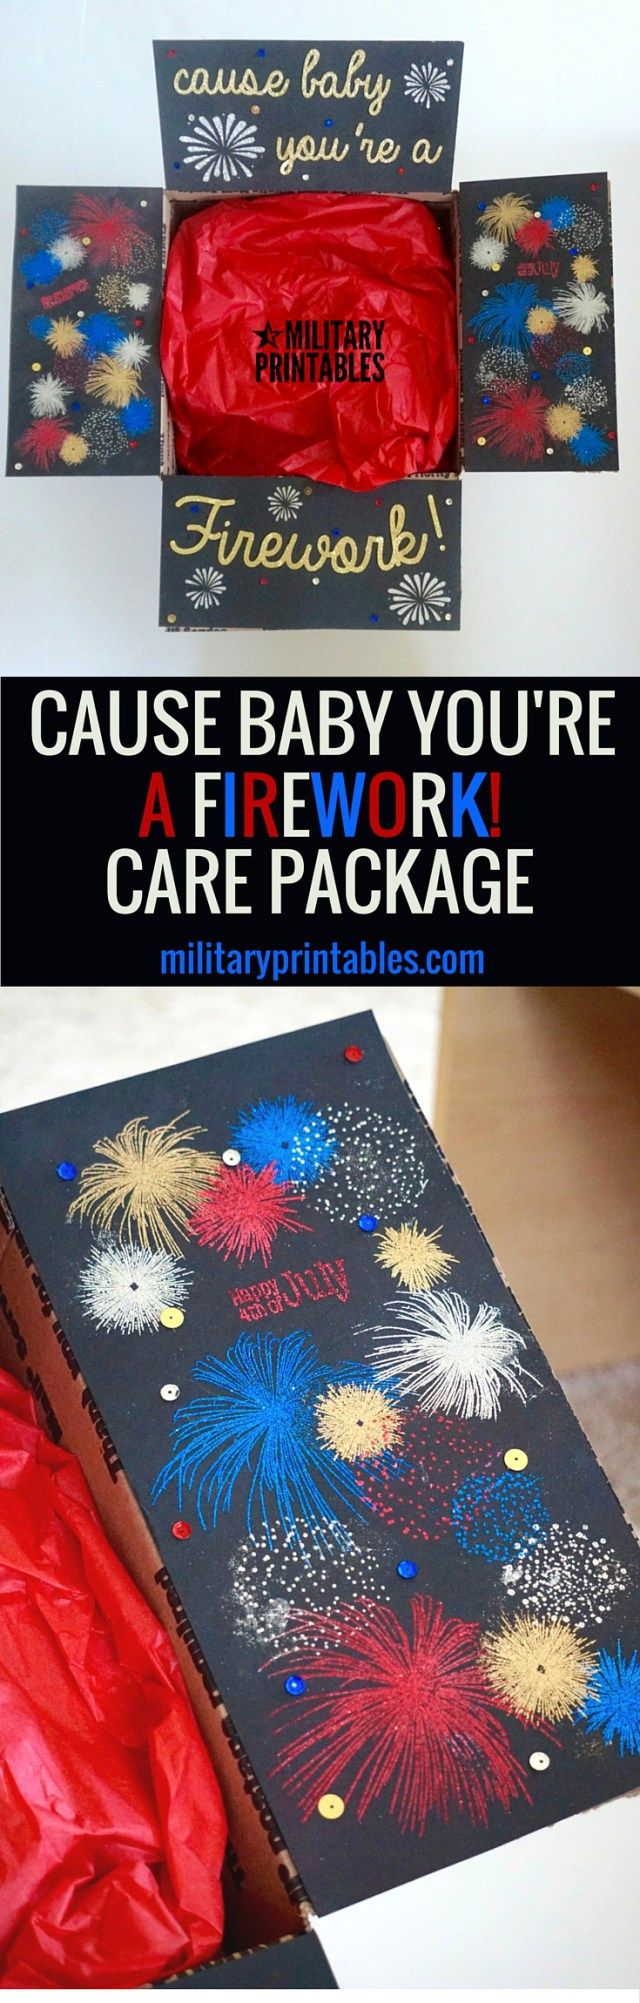 4th of July patriotic, red, white, and blue with fireworks. Cool Care package Idea!